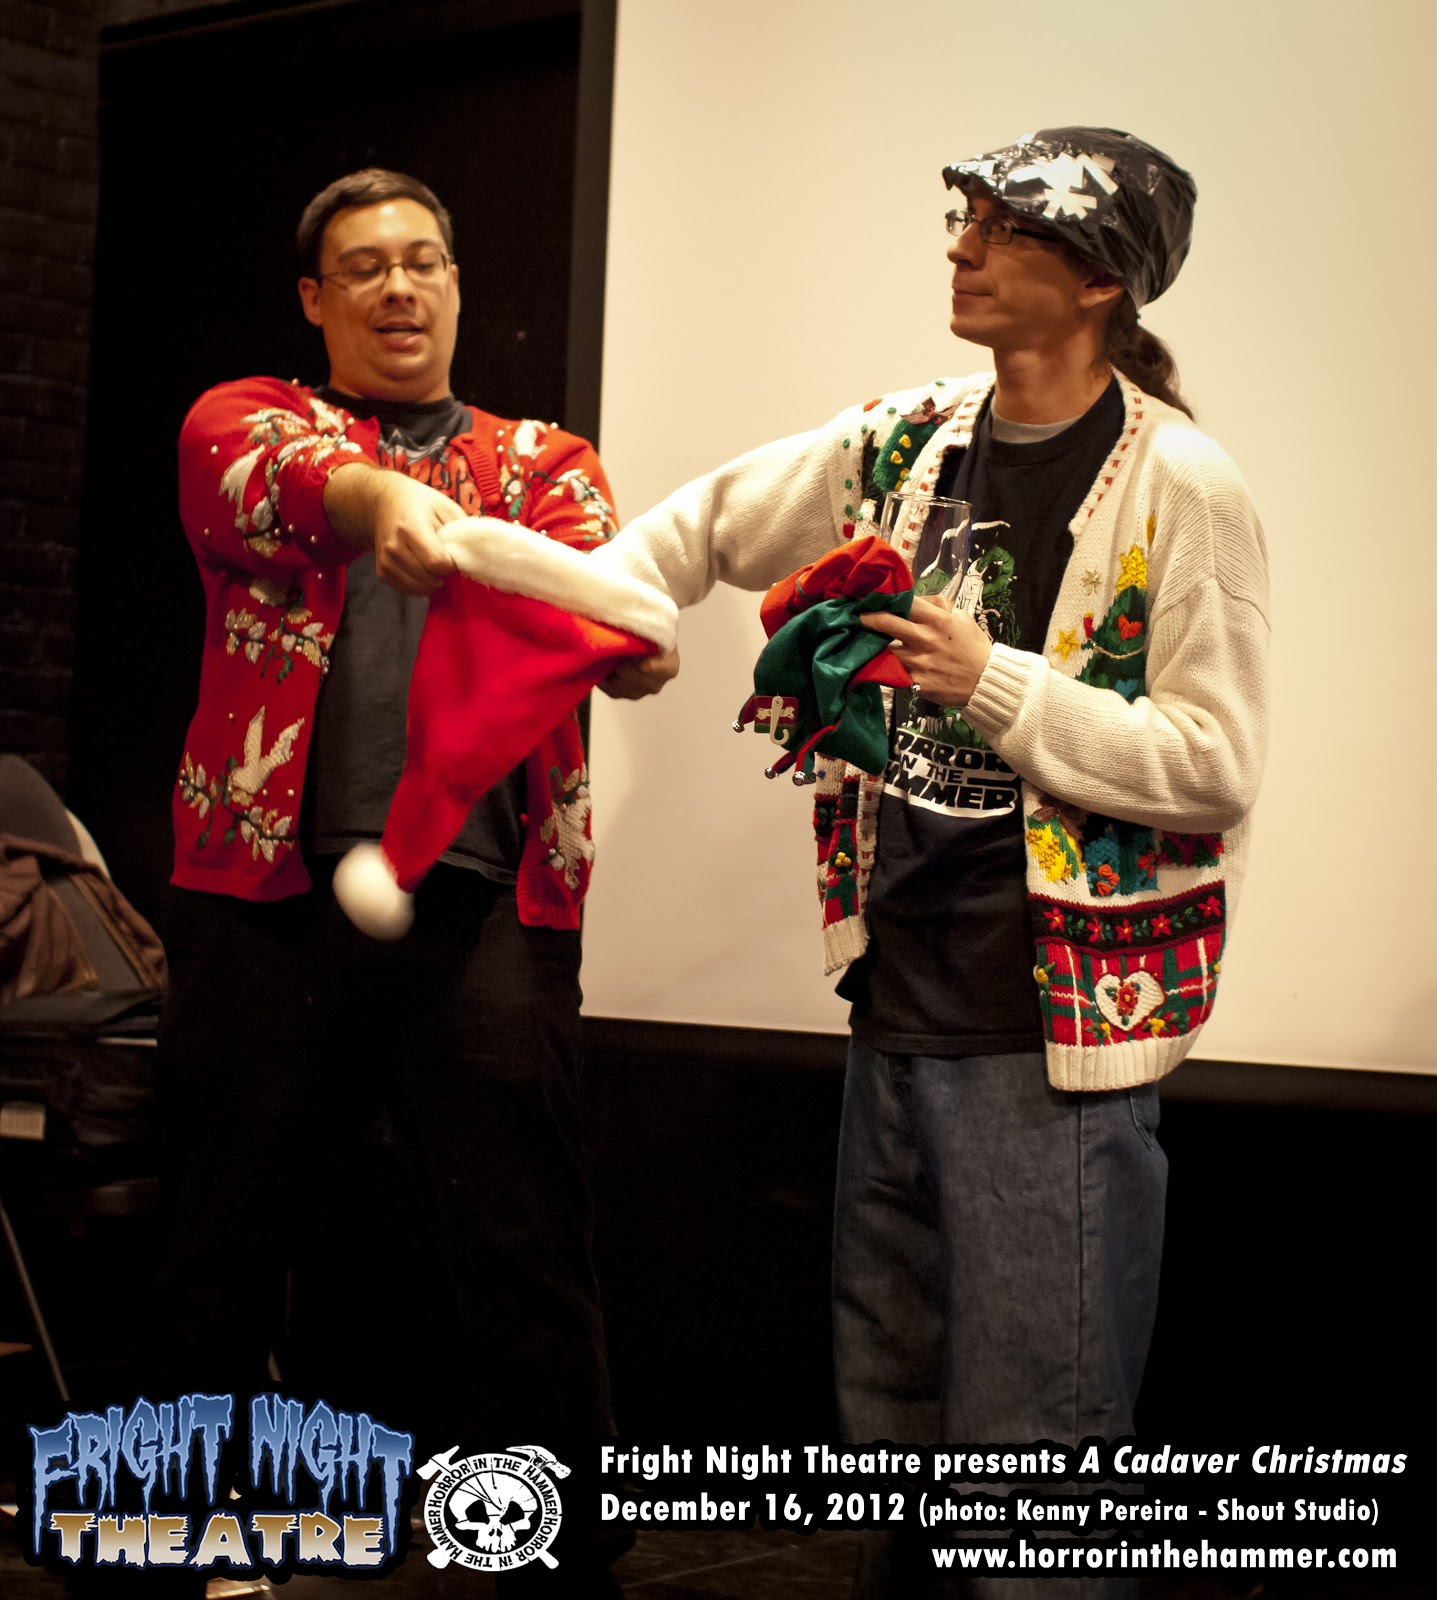 Photos from Fright Night Theatre presents A CADAVER CHRISTMAS